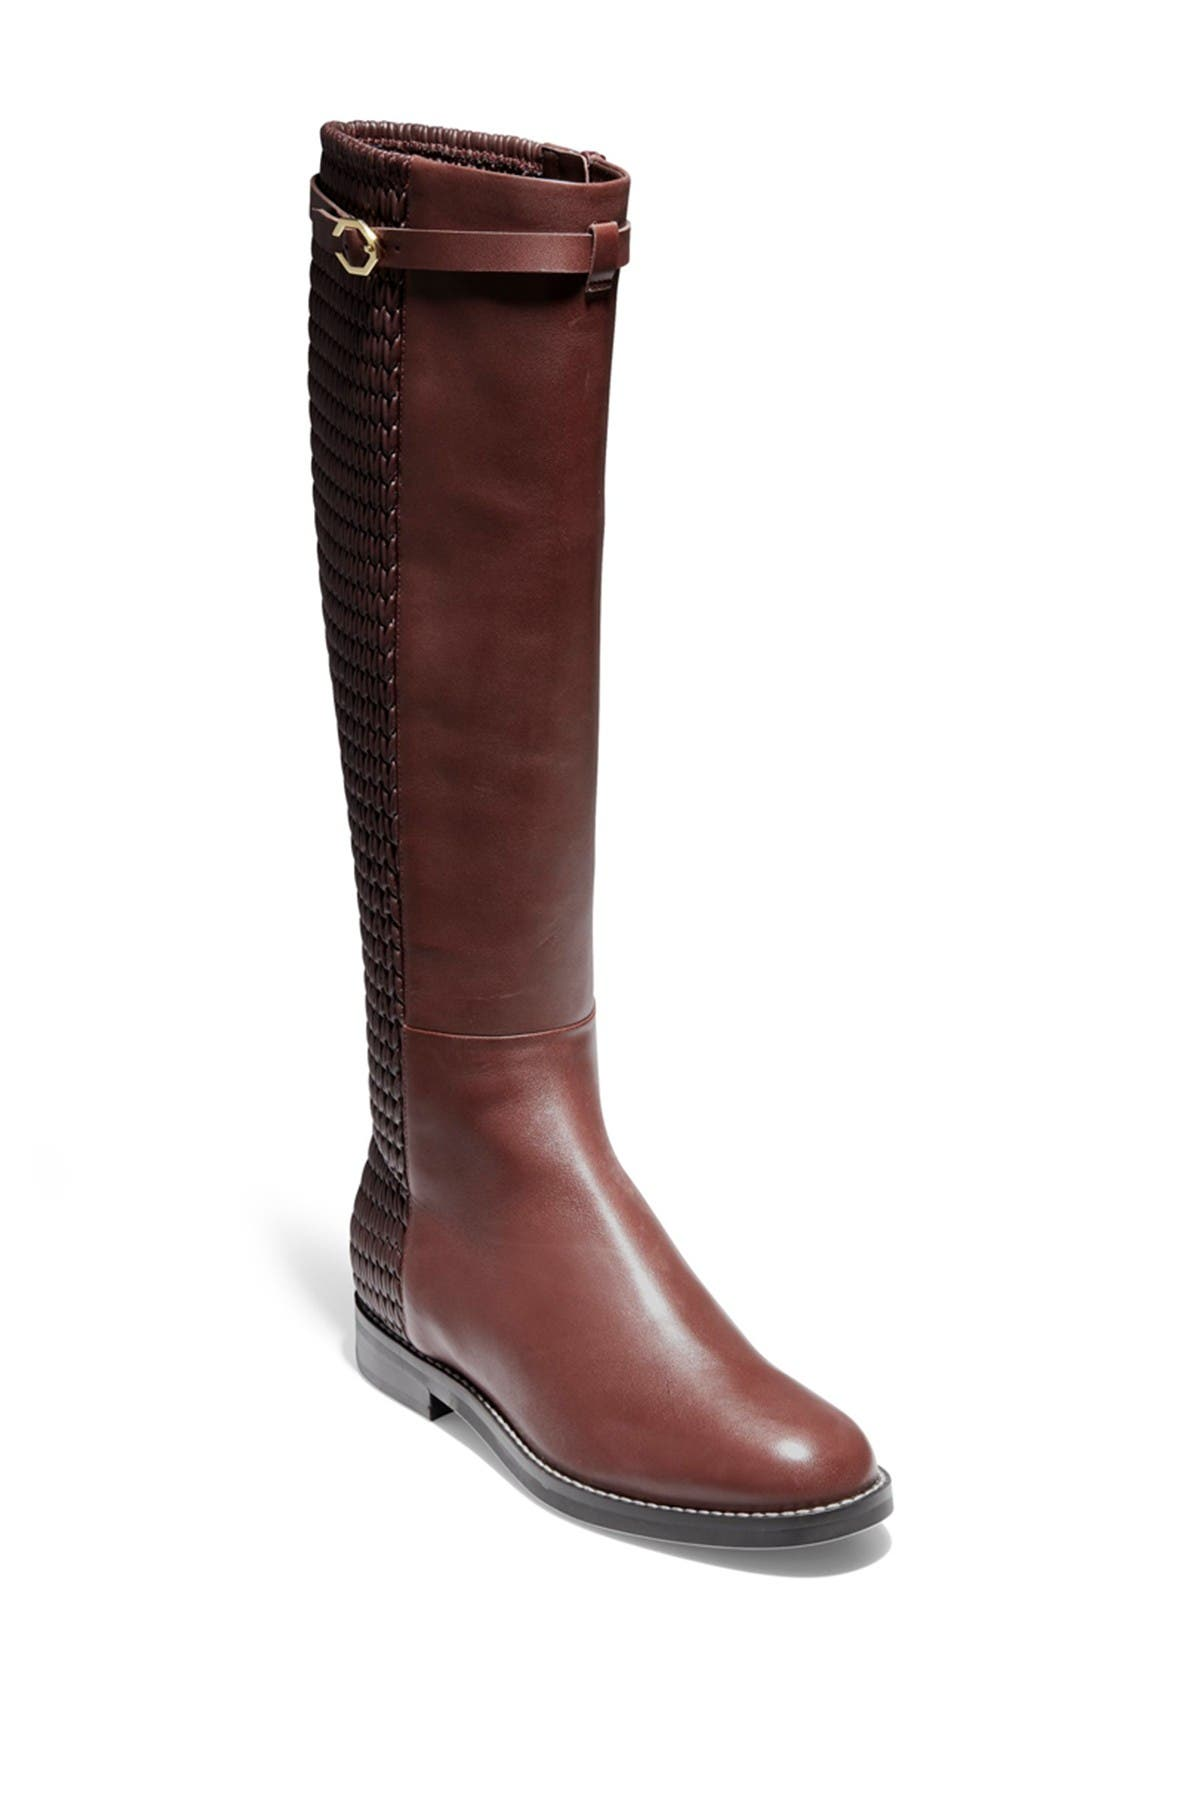 Image of Cole Haan Abi Textured Shaft Riding Boot